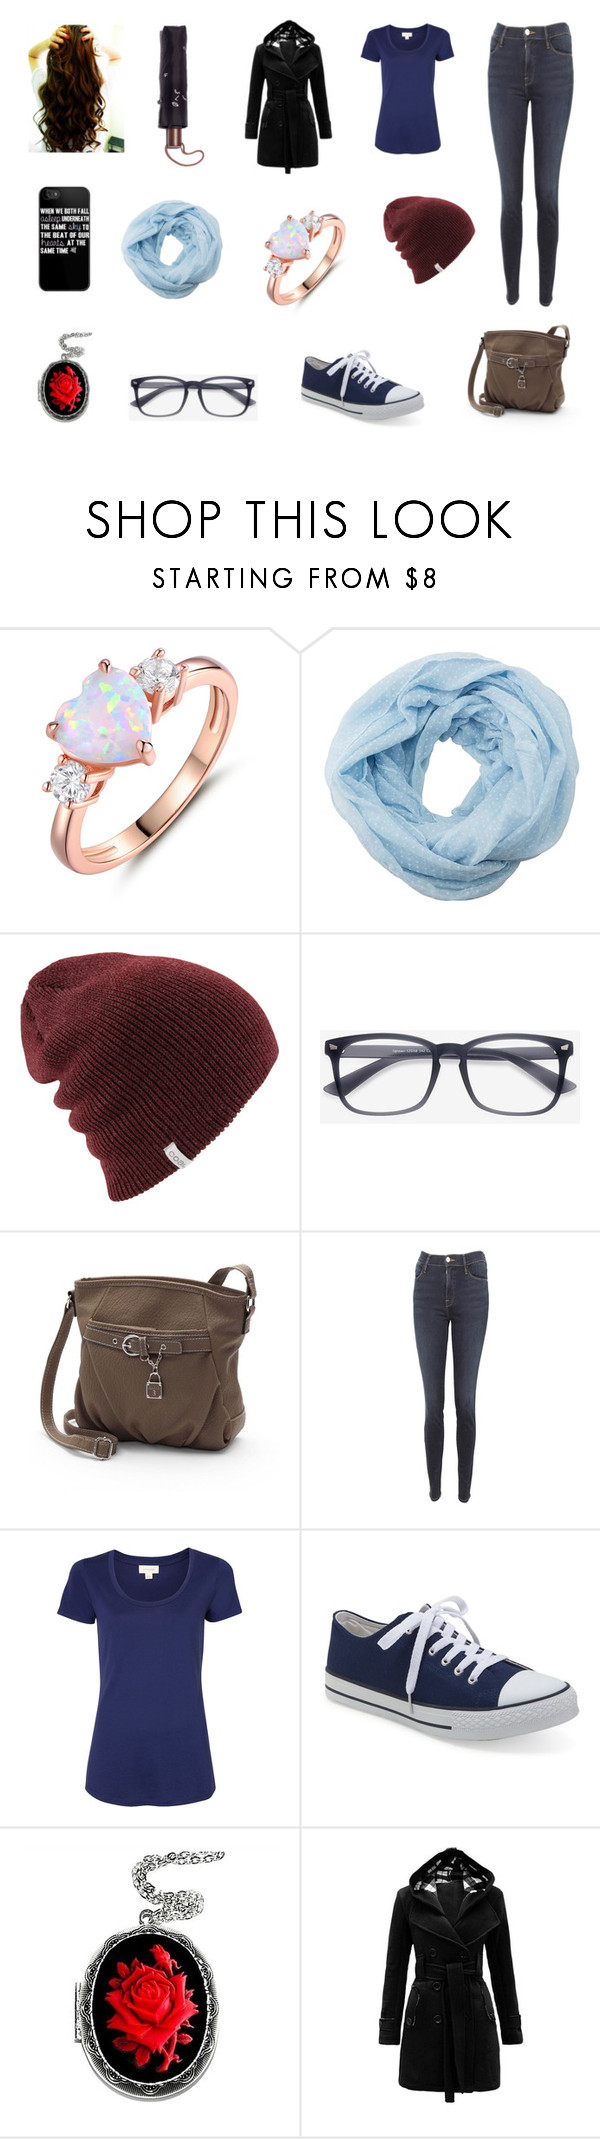 """""""Untitled #240"""" by fallen-326 on Polyvore featuring Peermont, Charlotte Russe, EyeBuyDirect.com, Rosetti, Frame, Witchery, Aéropostale, Couture by Lolita and Madewell"""